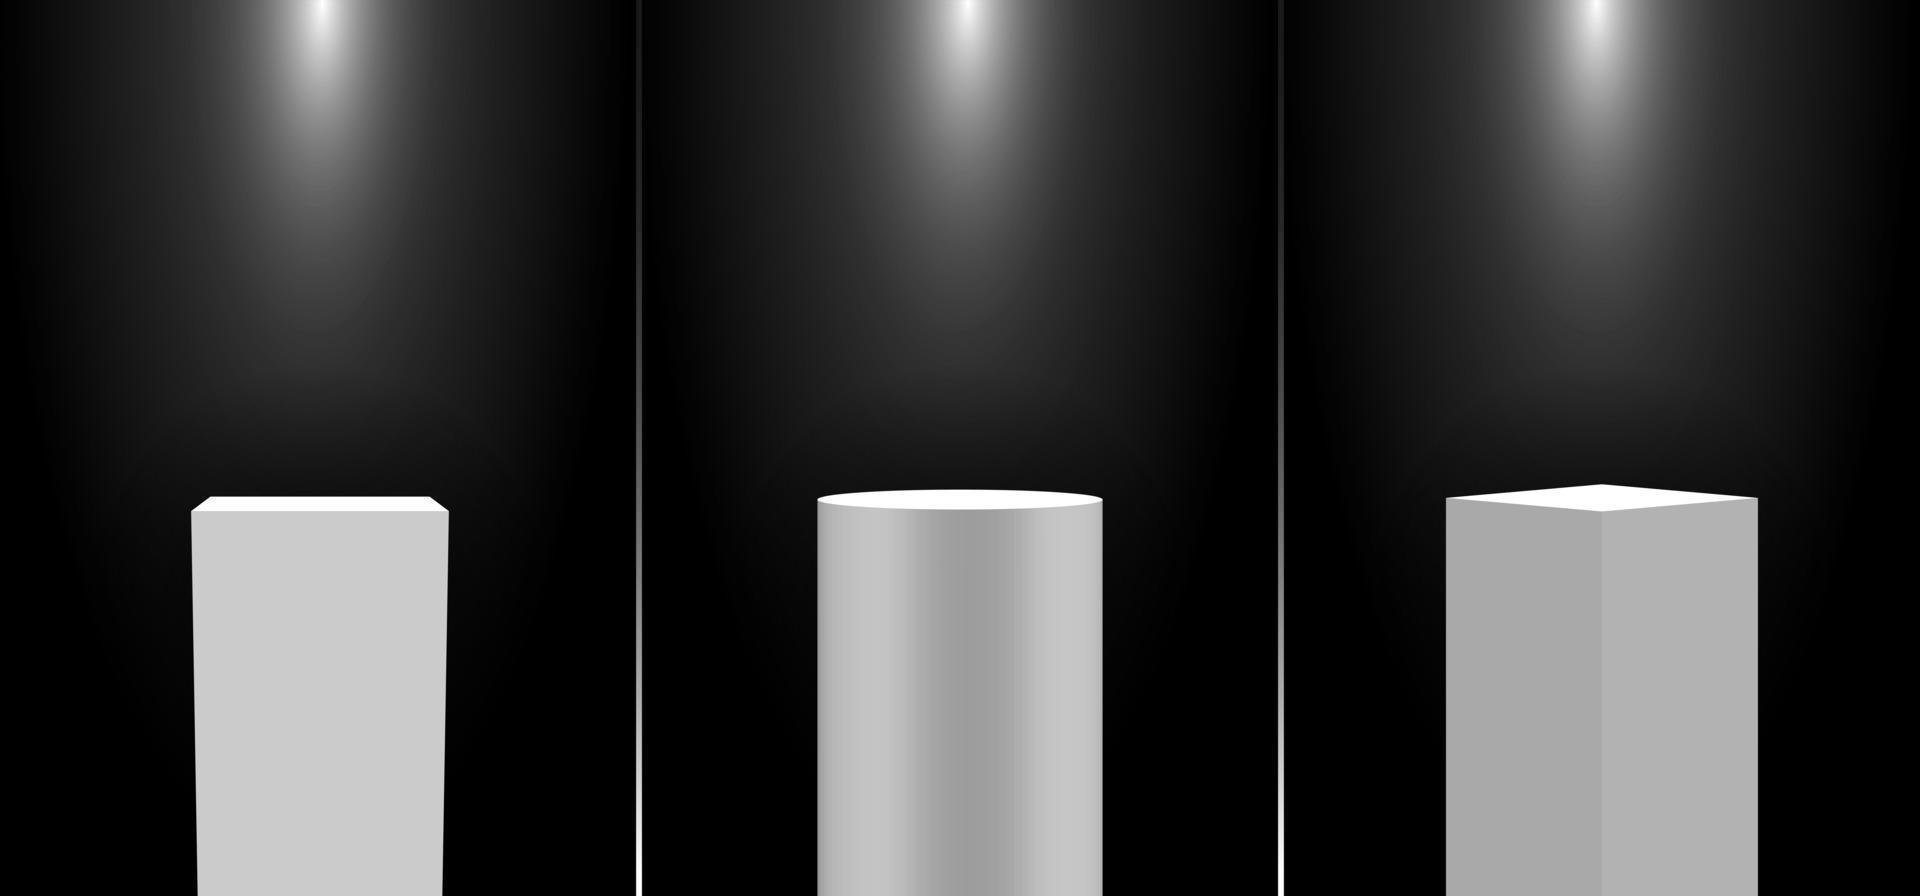 Set of 3D realistic white pedestal podium exhibition display gallery blank product stands on black background with lighting vector